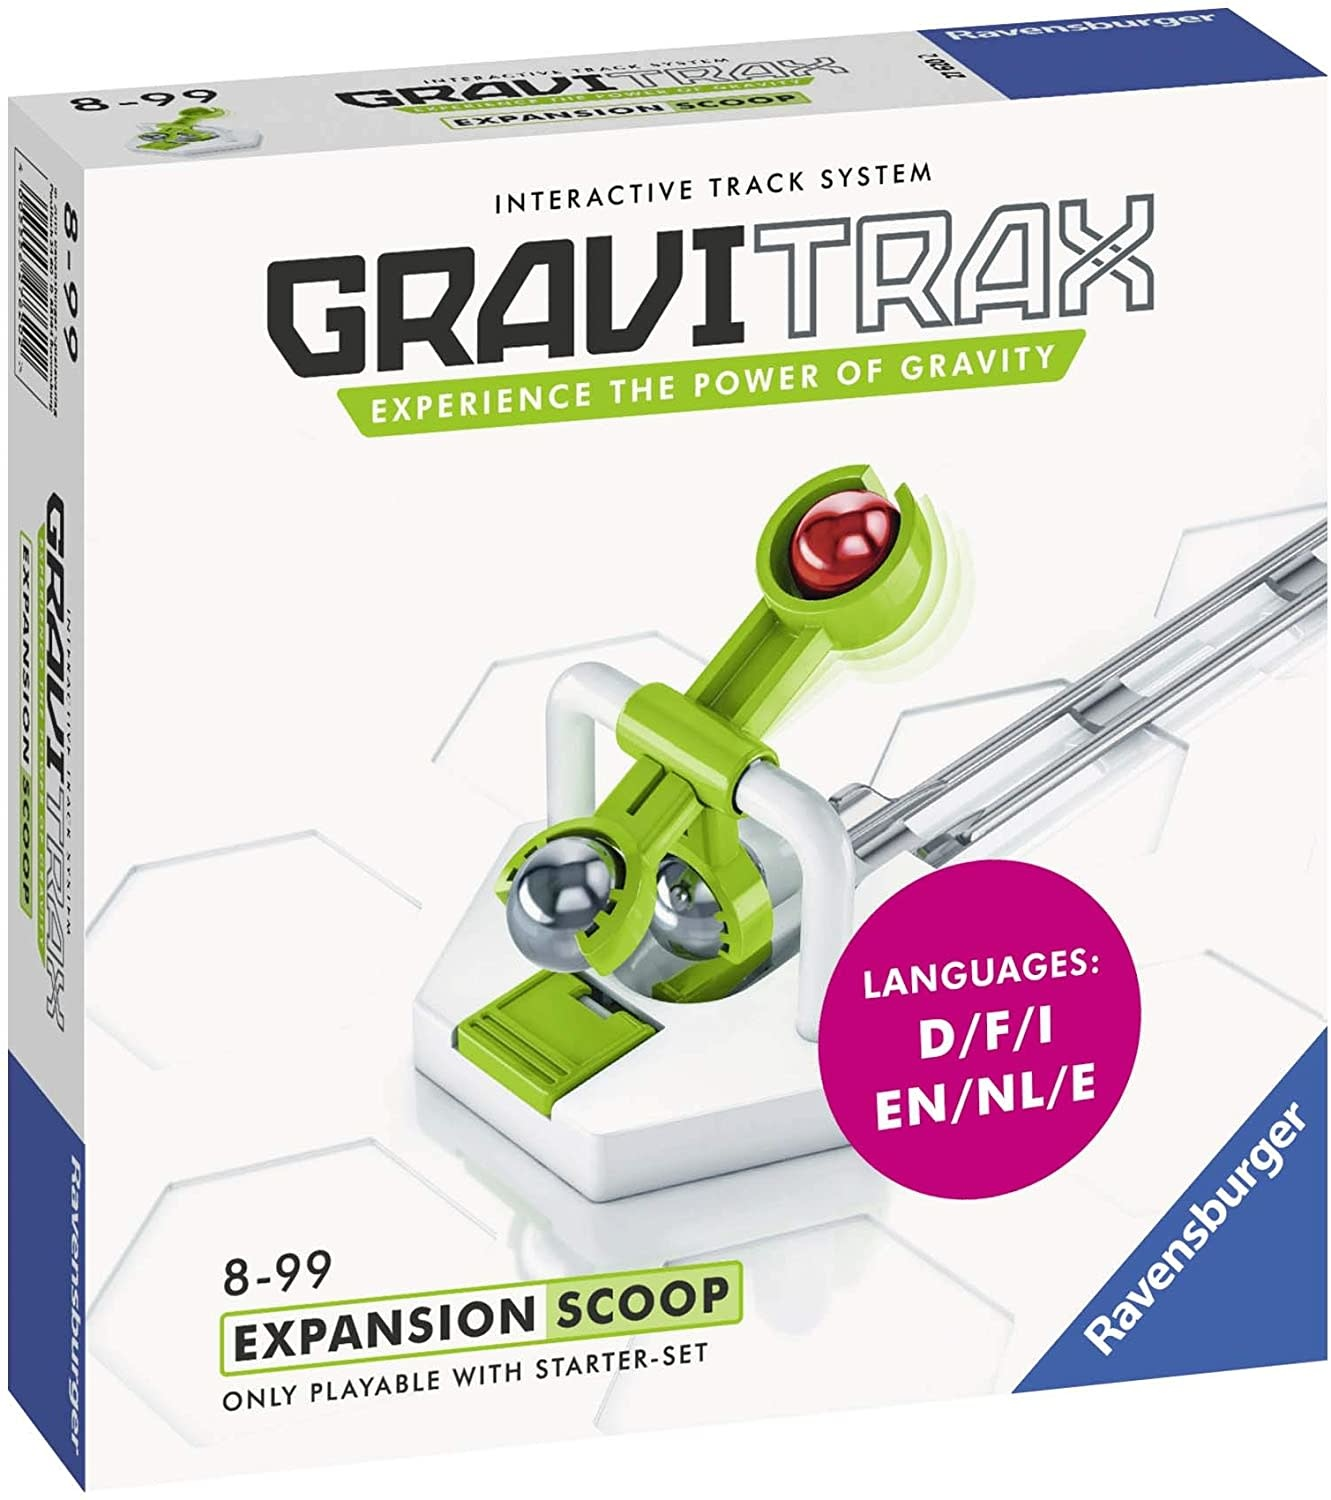 Expansion Scoop by Gravitrax